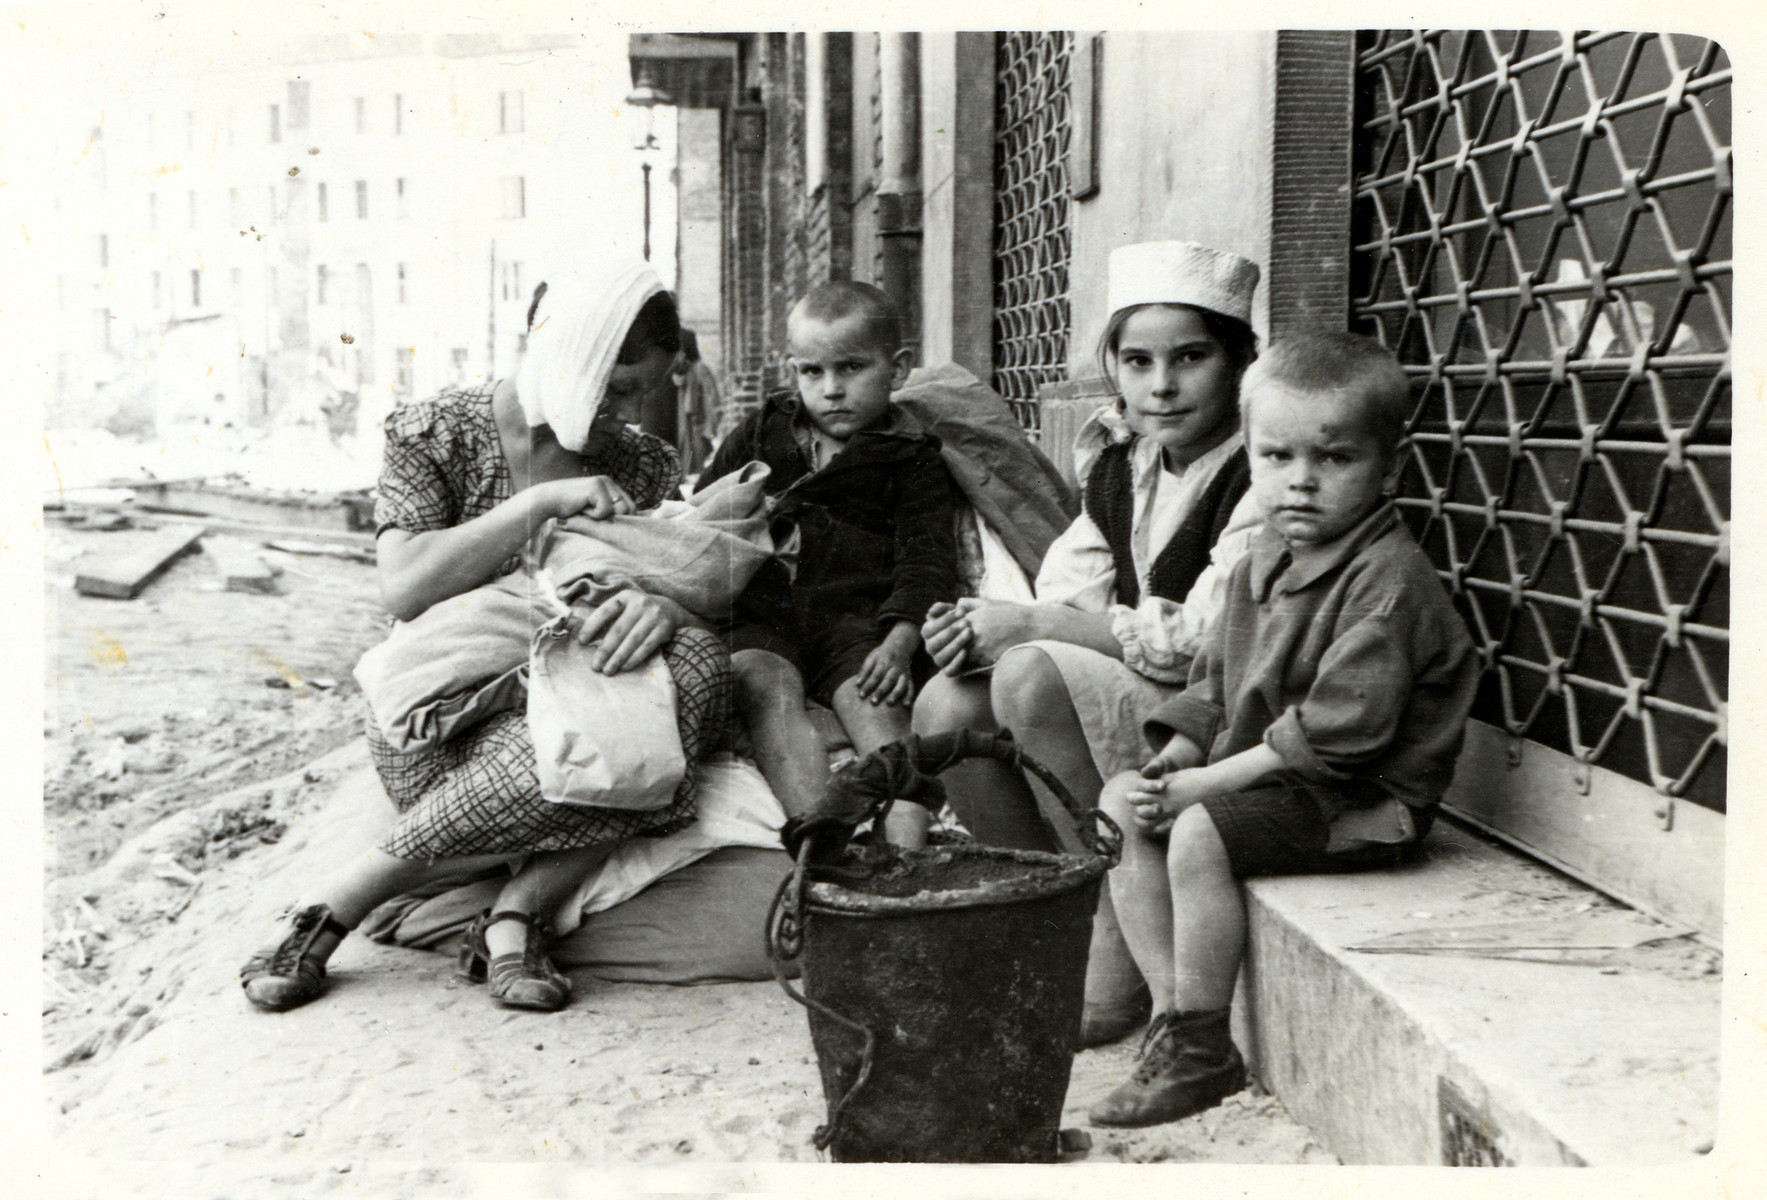 A Polish family lives in desitution on the streets of besieged Warsaw.